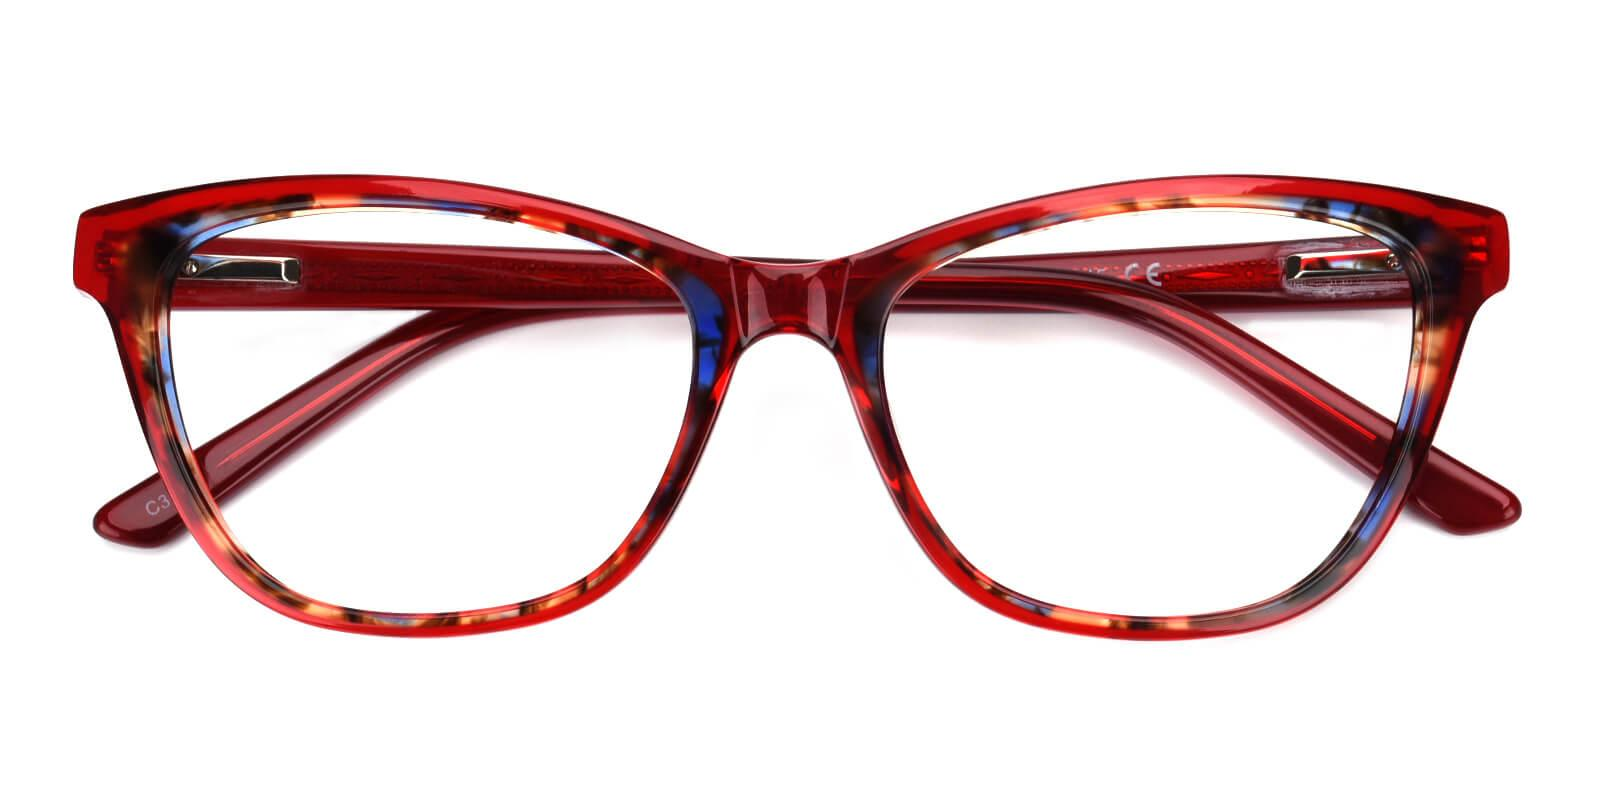 Evangeline-Red-Cat-Acetate-Eyeglasses-detail